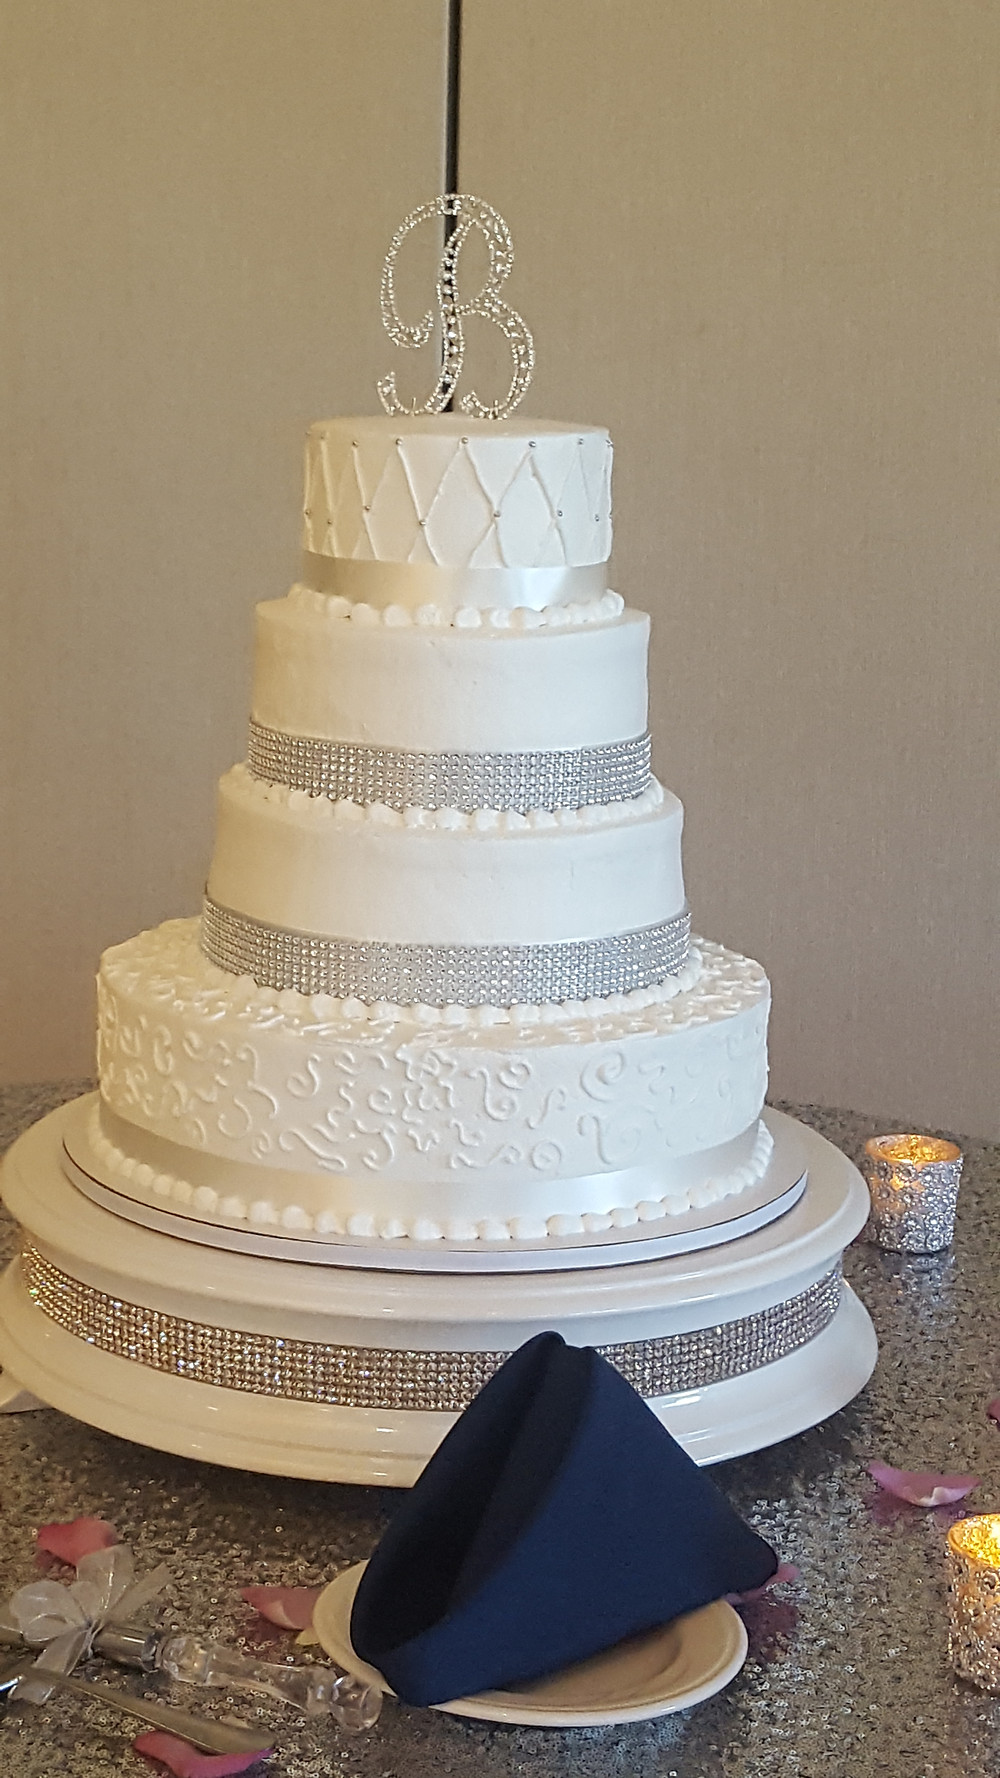 Cake by Cakes by Connie at the Italian Cultural Center, Clinton Twp, Michigan.